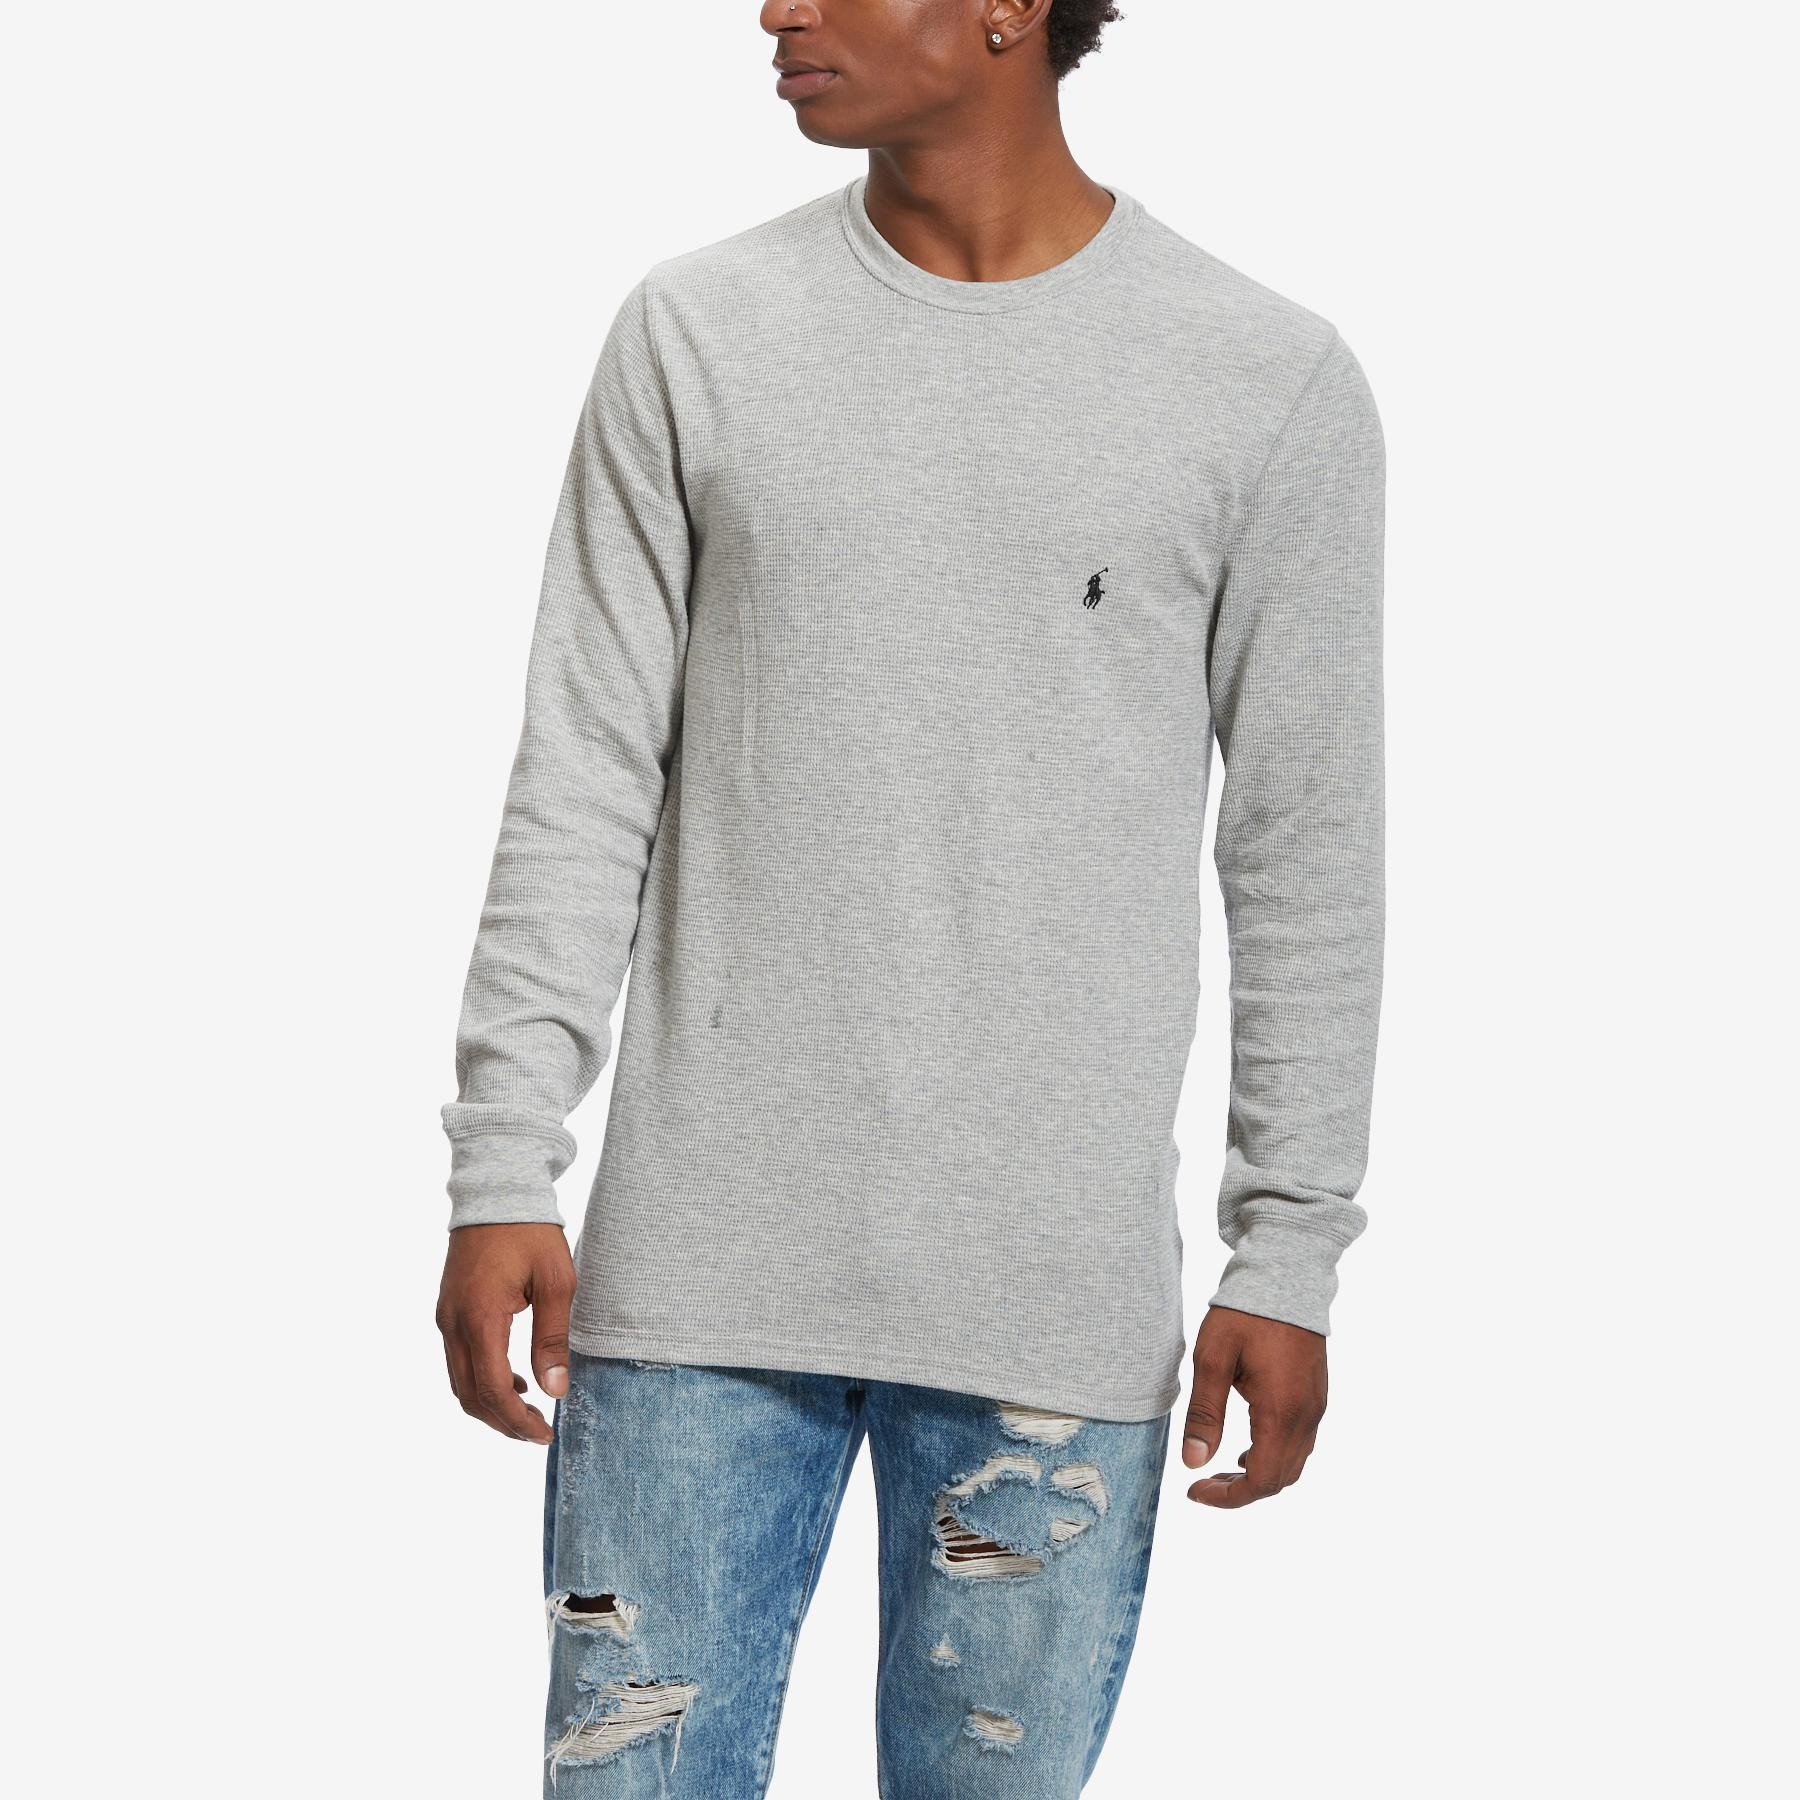 Men's Waffle- Knit Crew Neck Thermal